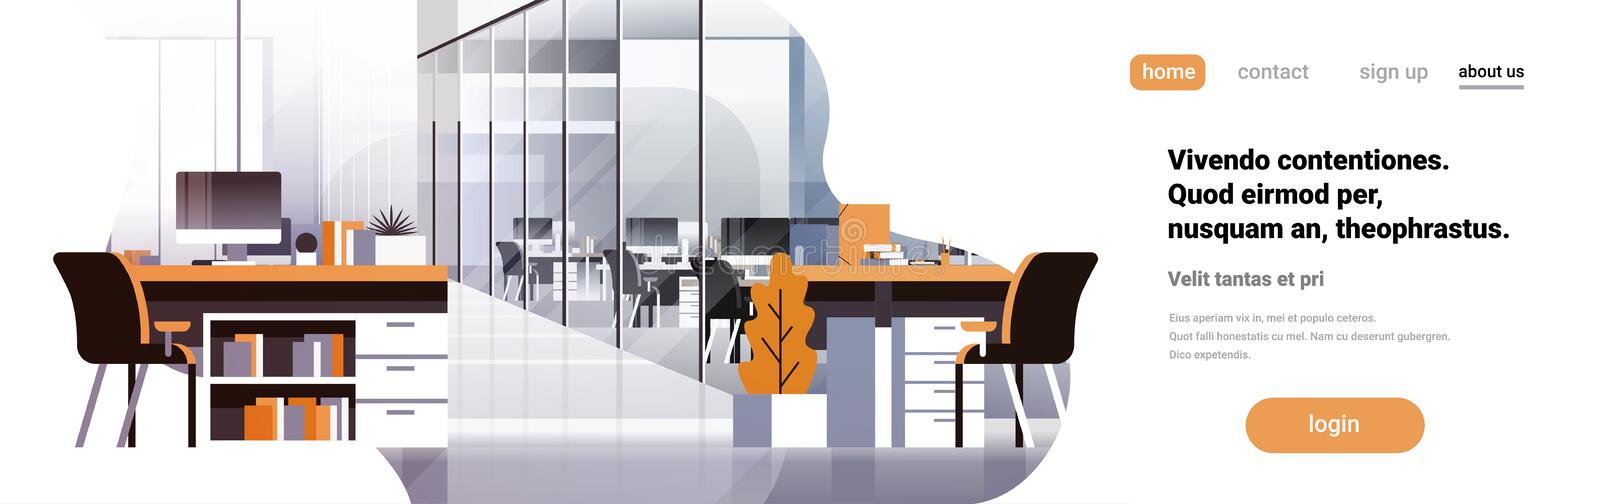 Coworking office interior modern center creative workplace environment horizontal banner copy space empty workspace flat stock illustration